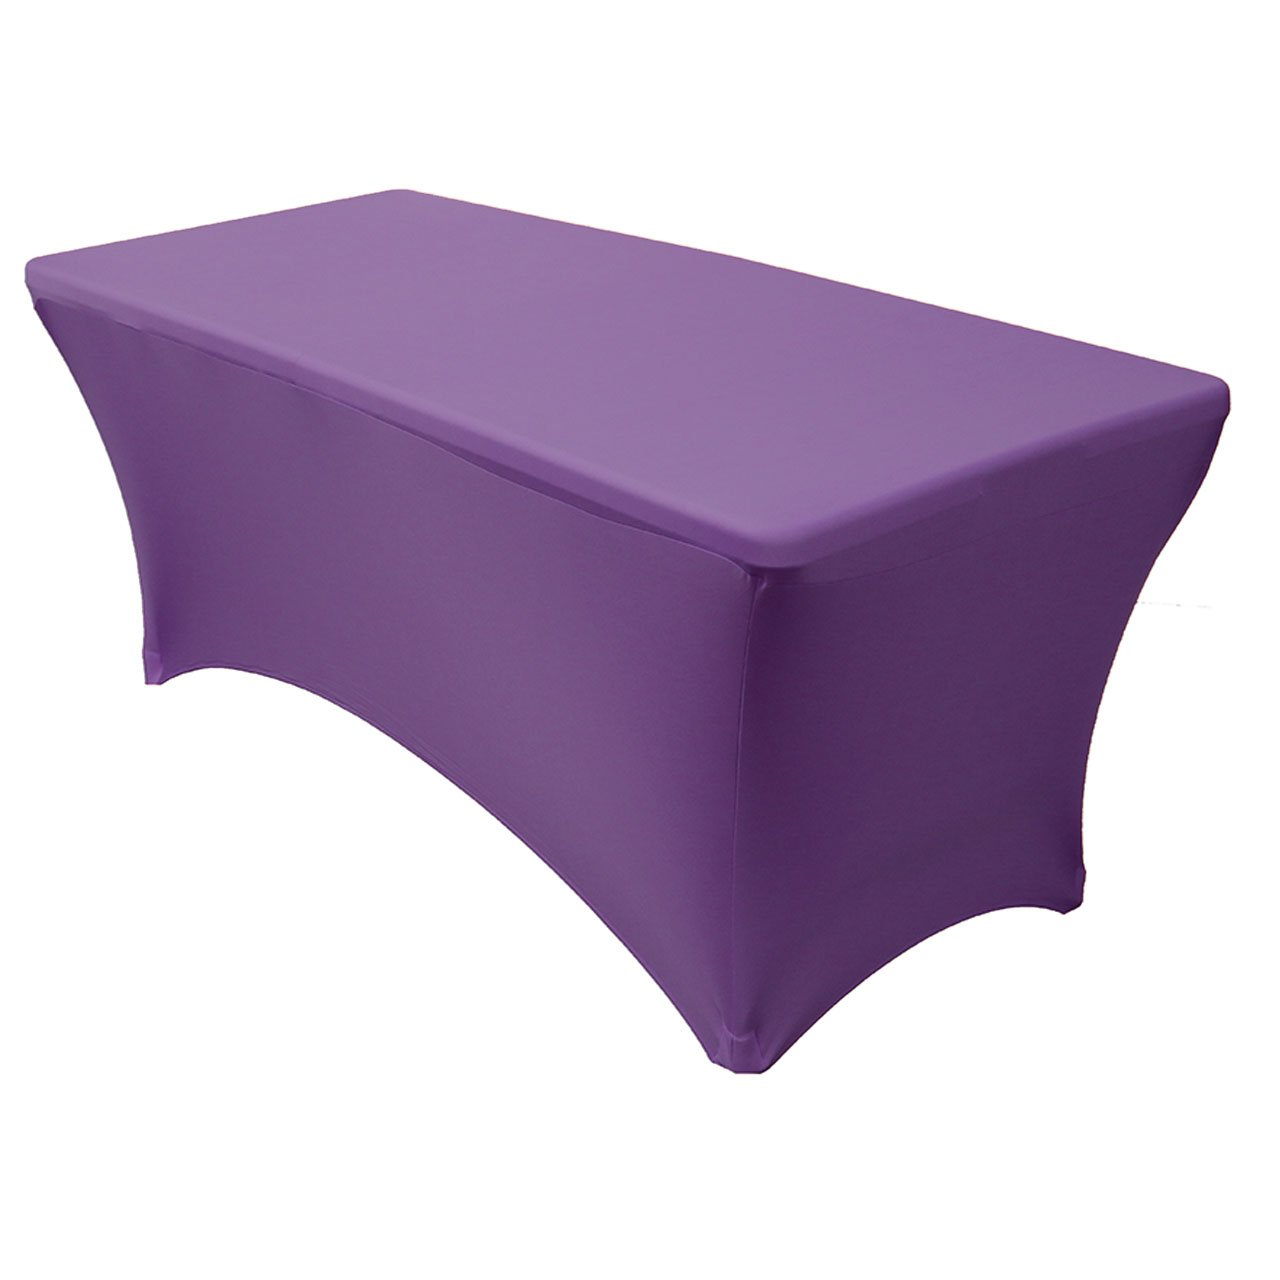 Your Chair Covers - Rectangular Fitted Stretch Spandex Table Cover, Purple, 6' L